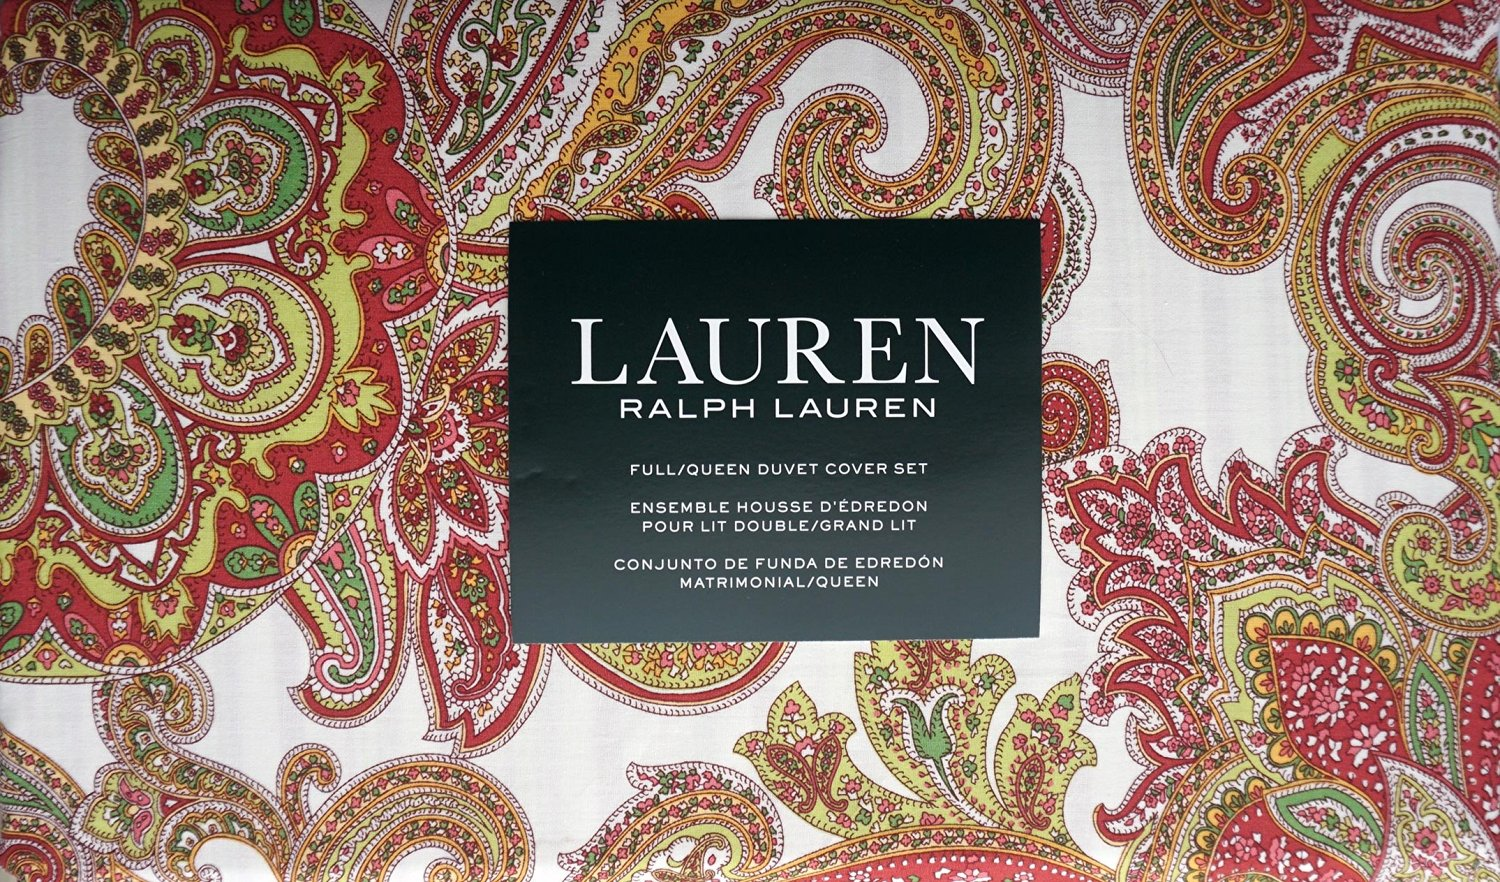 Lauren Ralph Lauren Bedding 3 Piece Full / Queen Duvet Cover Set Red Green Orange Yellow Paisley Pattern on White